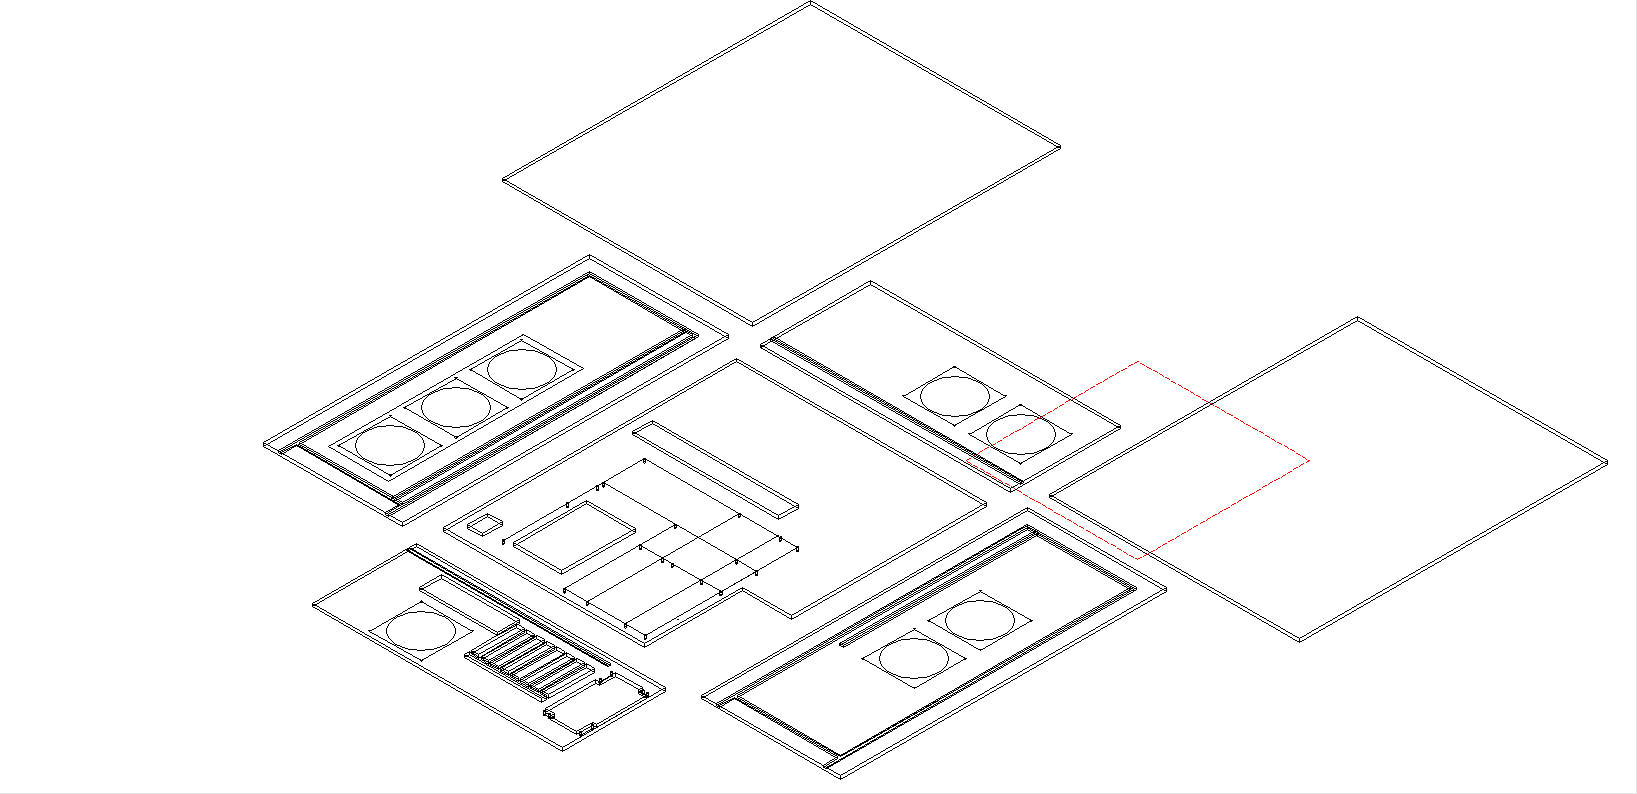 Plexi Case blueprint Via TurboCAD